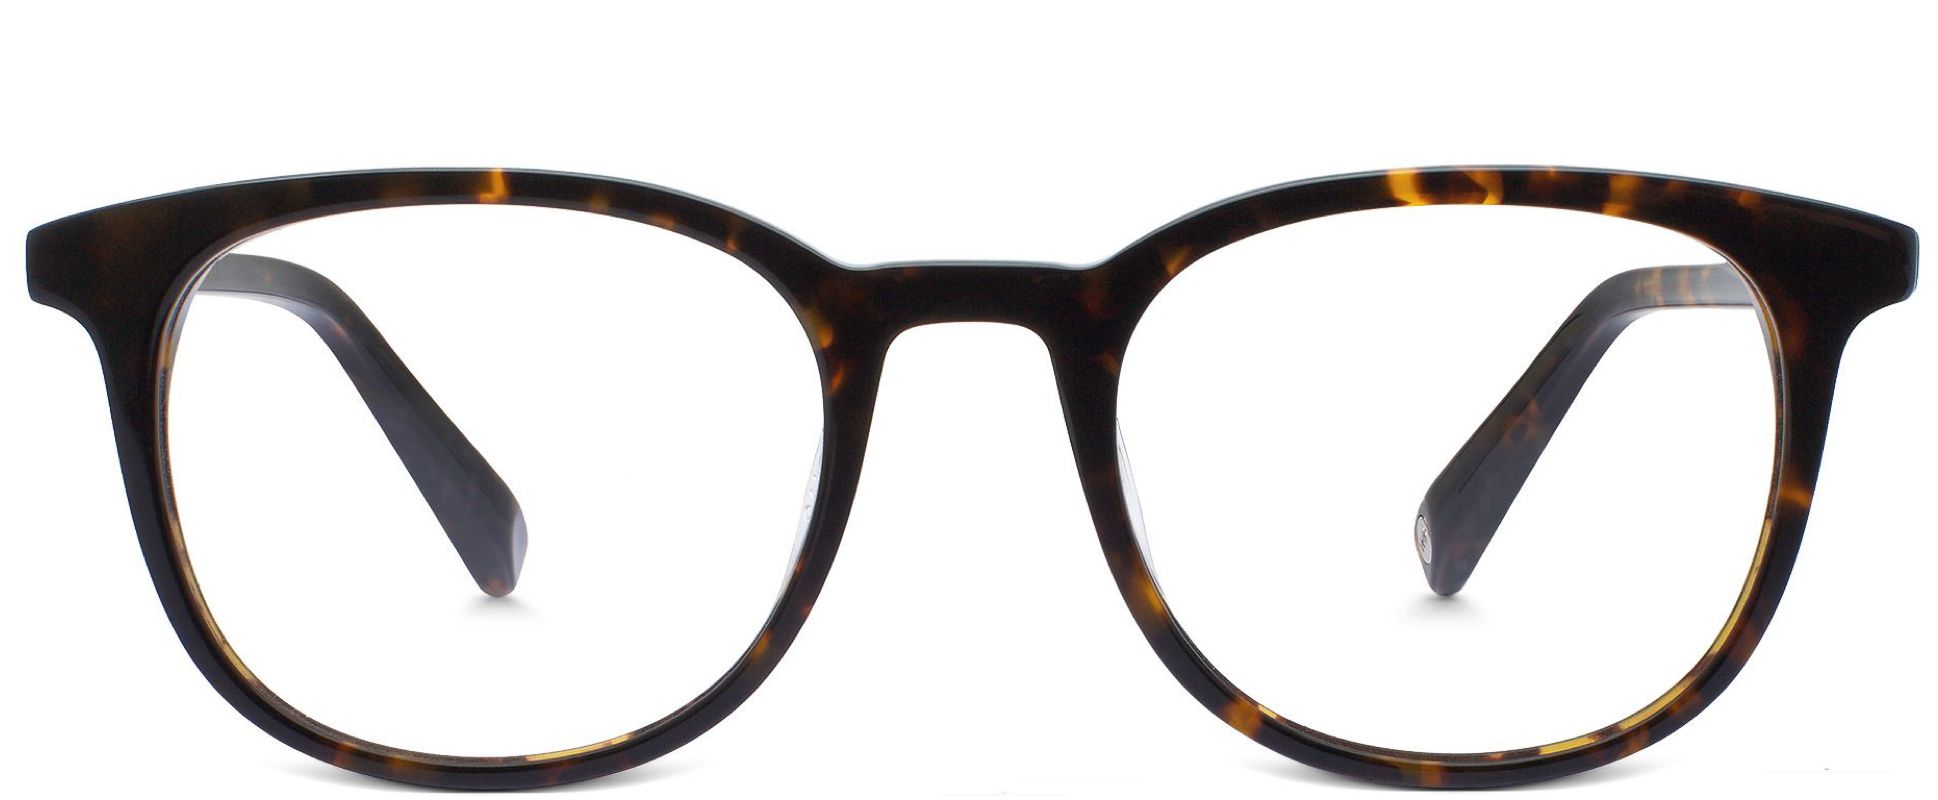 Durand in Whiskey Tortoise showing lighter lenses in an indoor setting